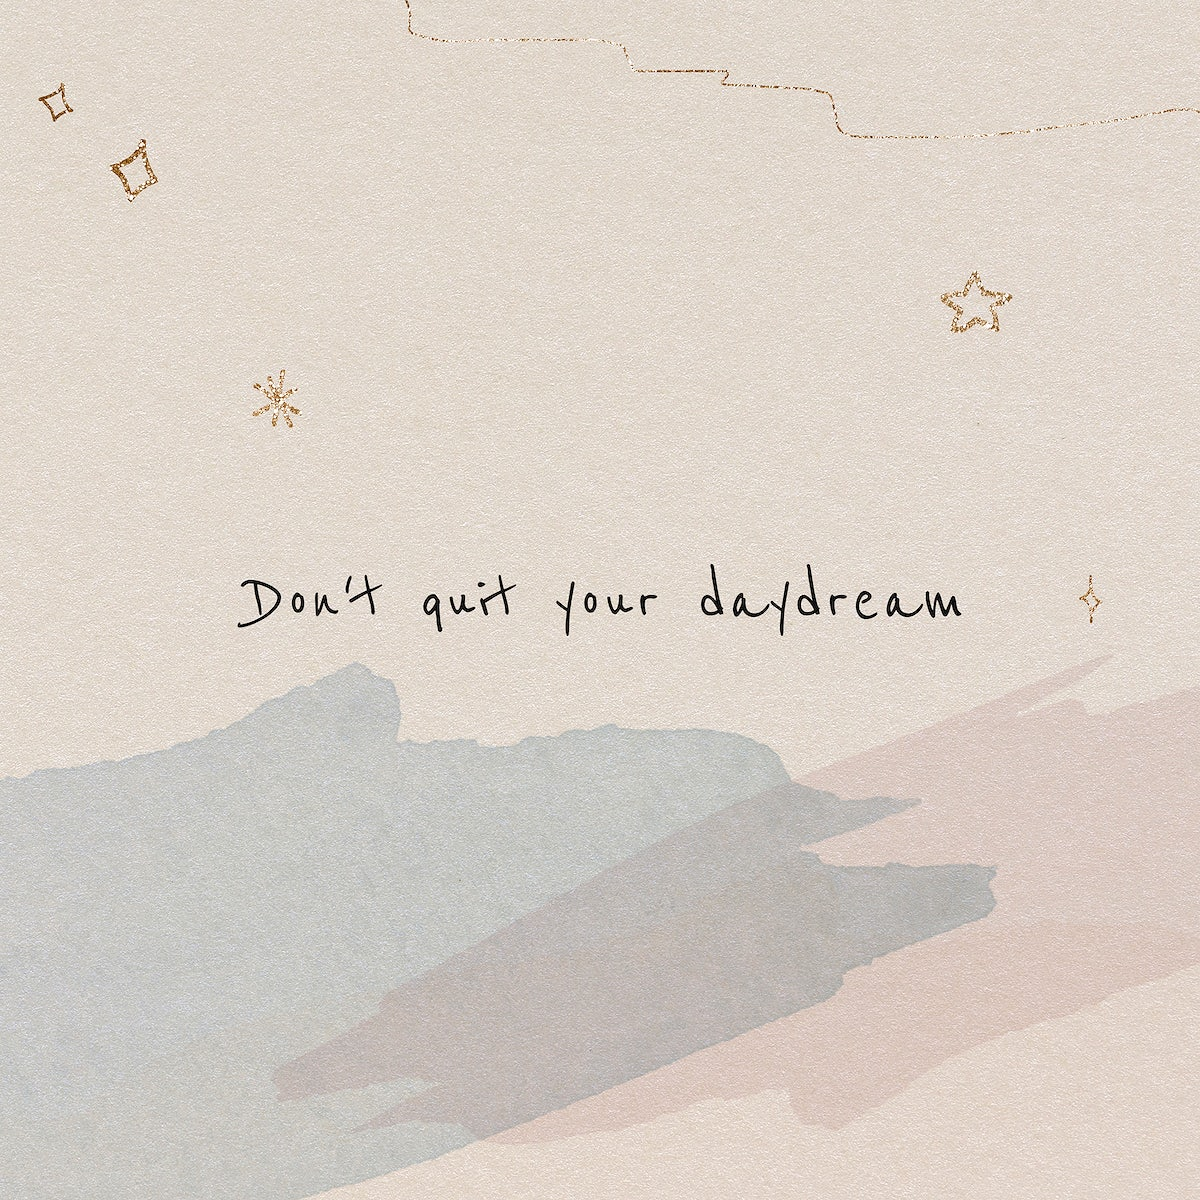 Don T Quit Your Daydream Inspirational Motivational Quote For Social Media Post